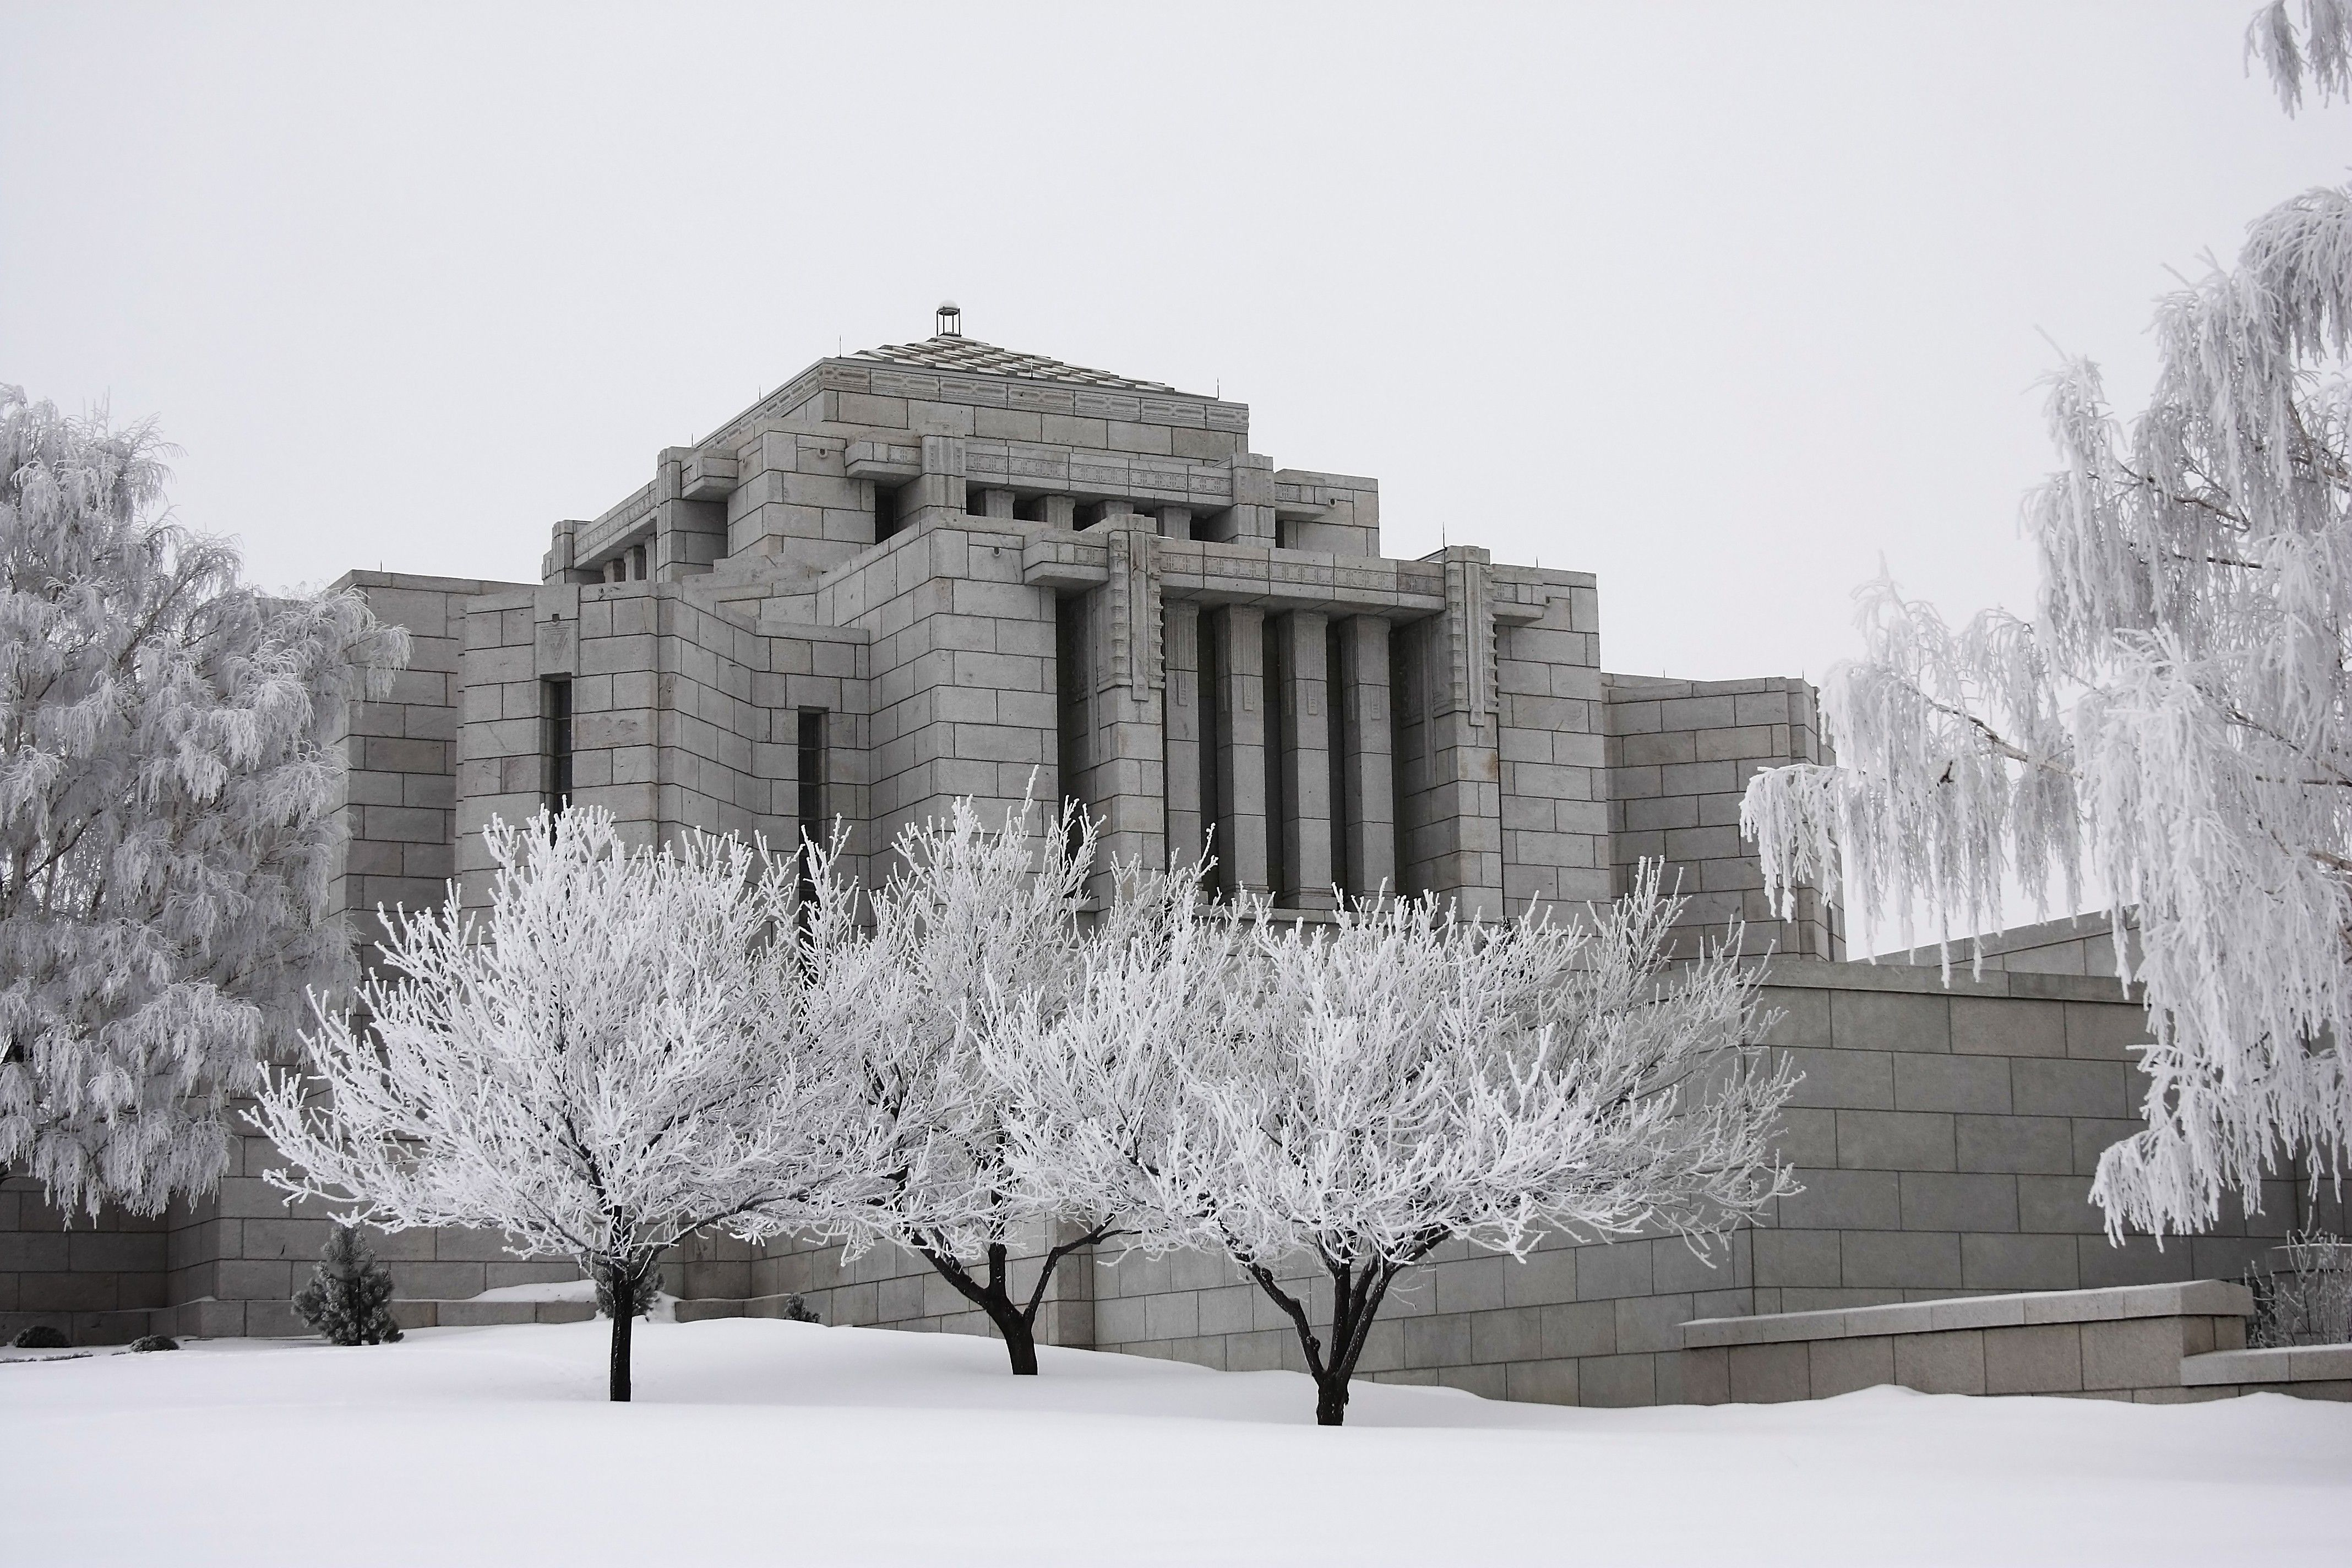 The Cardston Alberta Temple during winter, including the entrance and exterior of the temple.